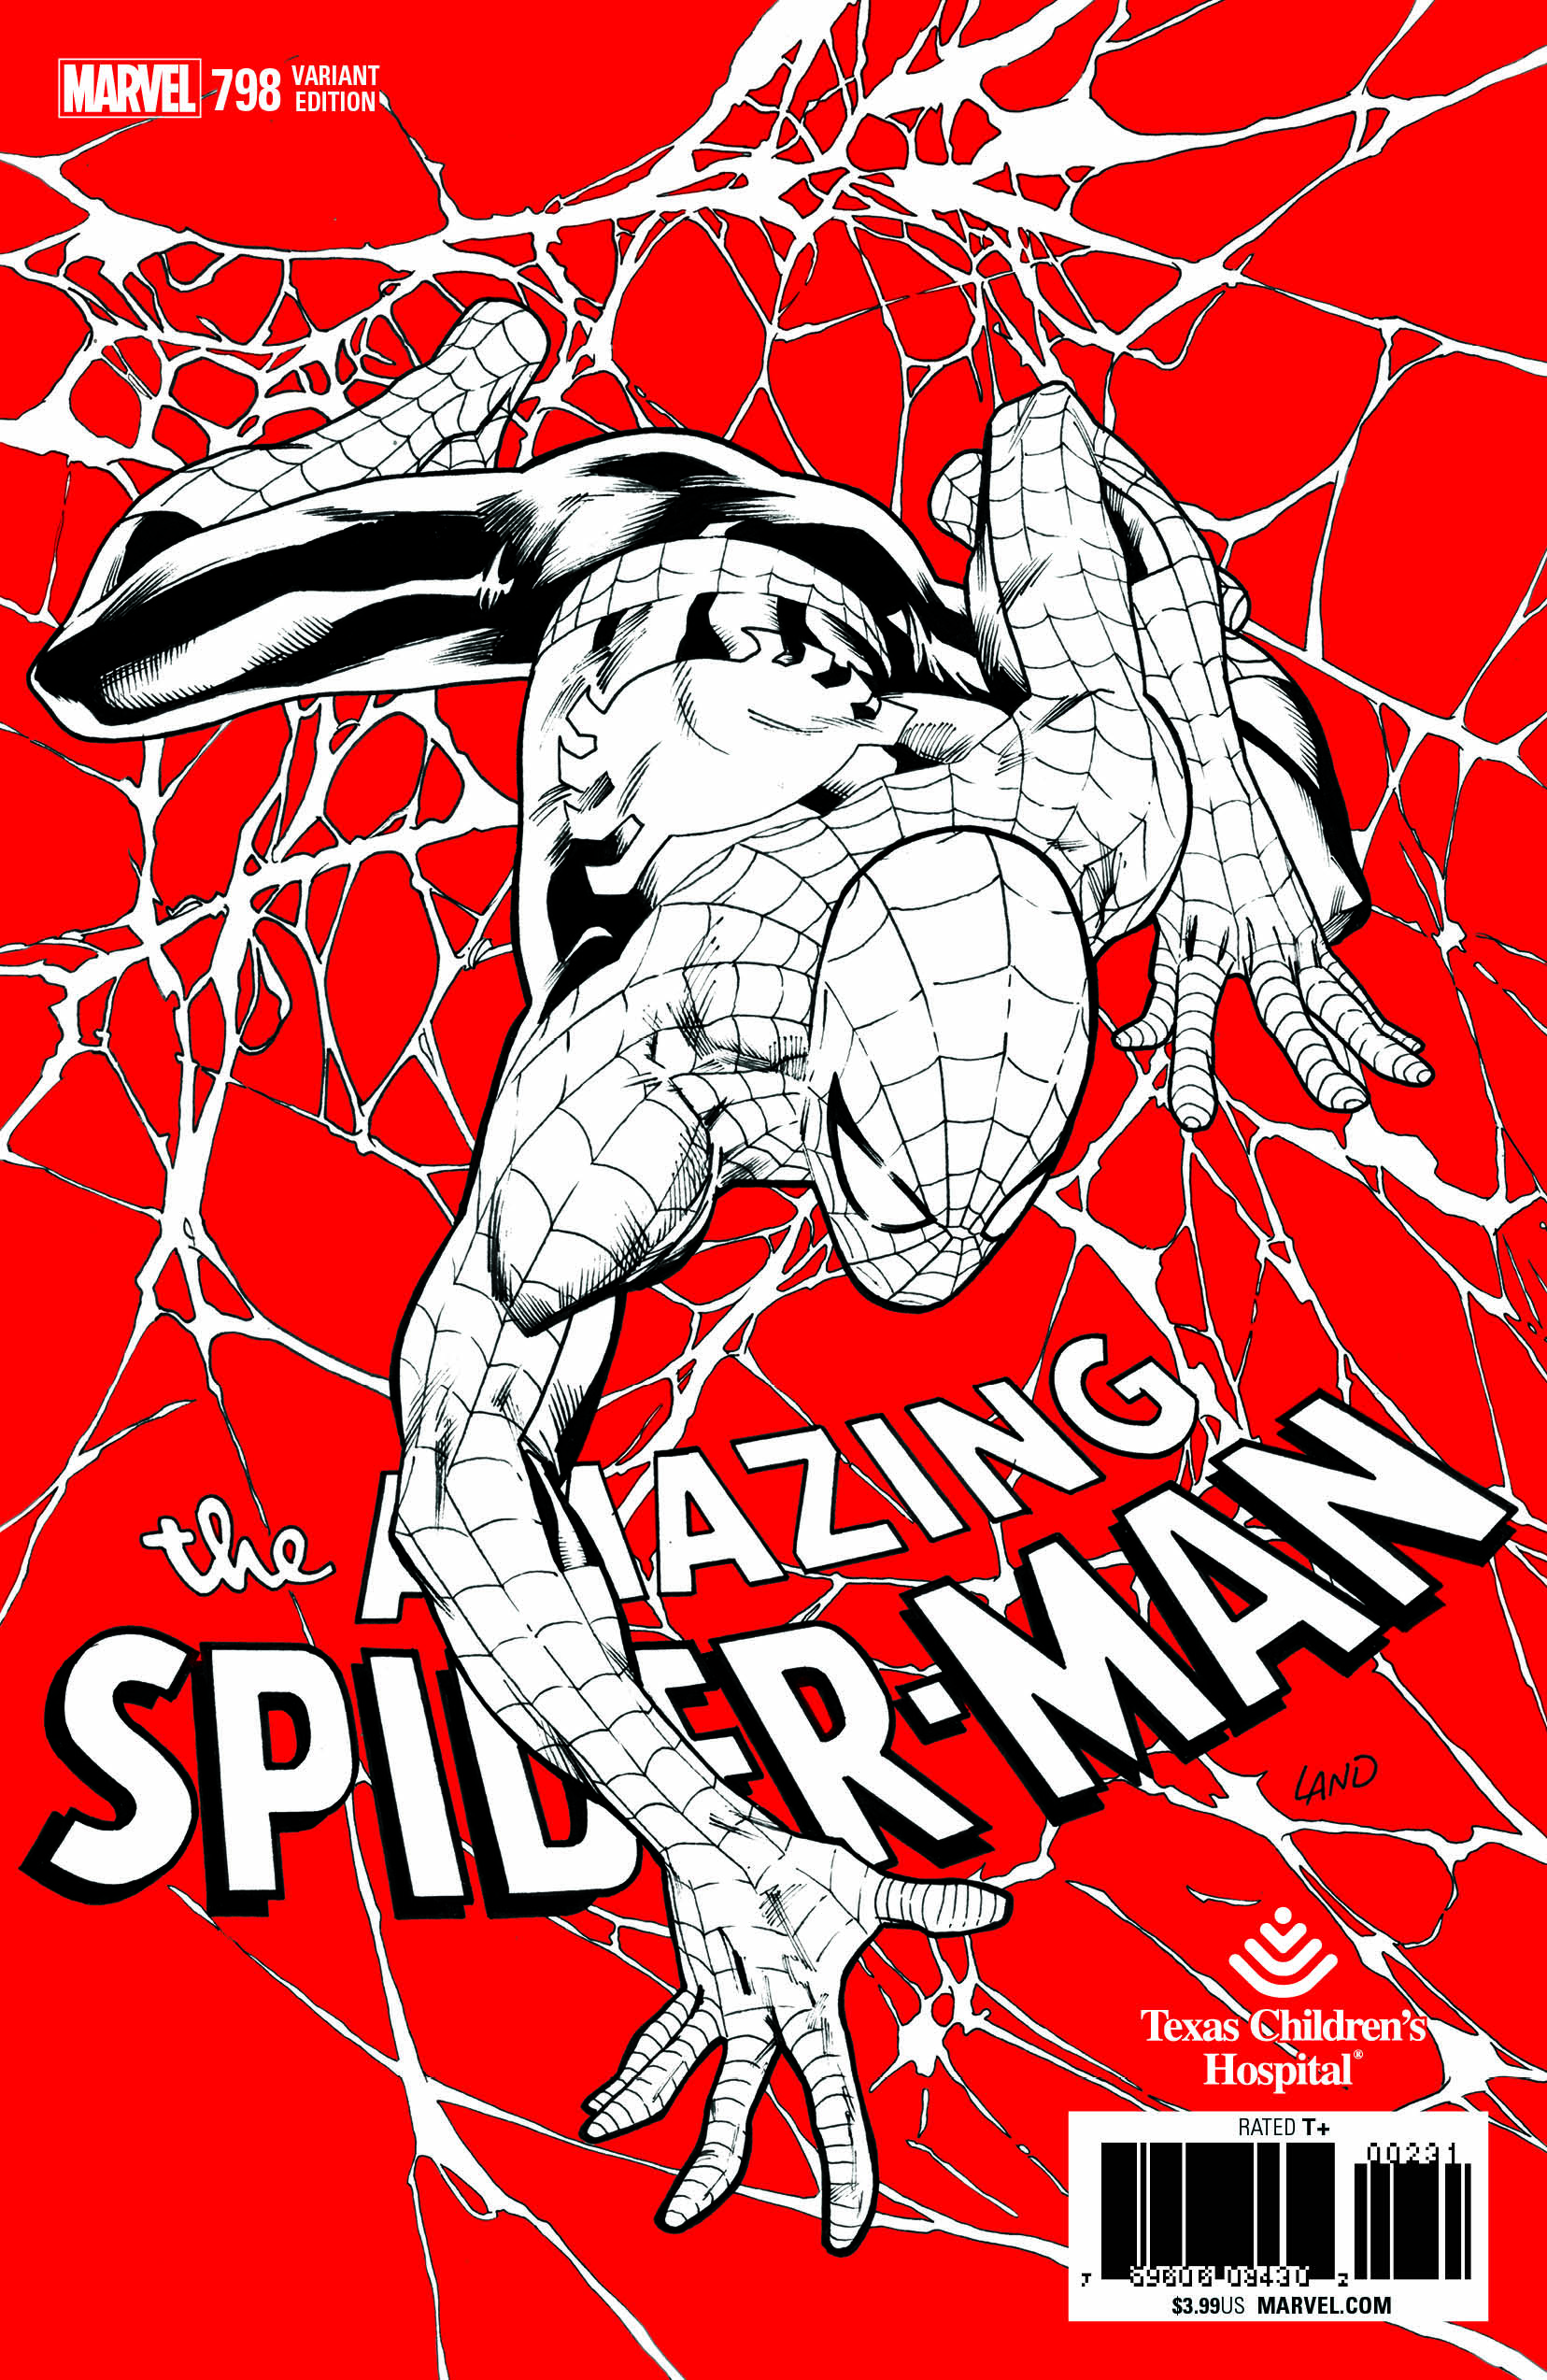 AMAZING SPIDER-MAN #798 GREG LAND CHILDREN HOSPITAL VARIANT